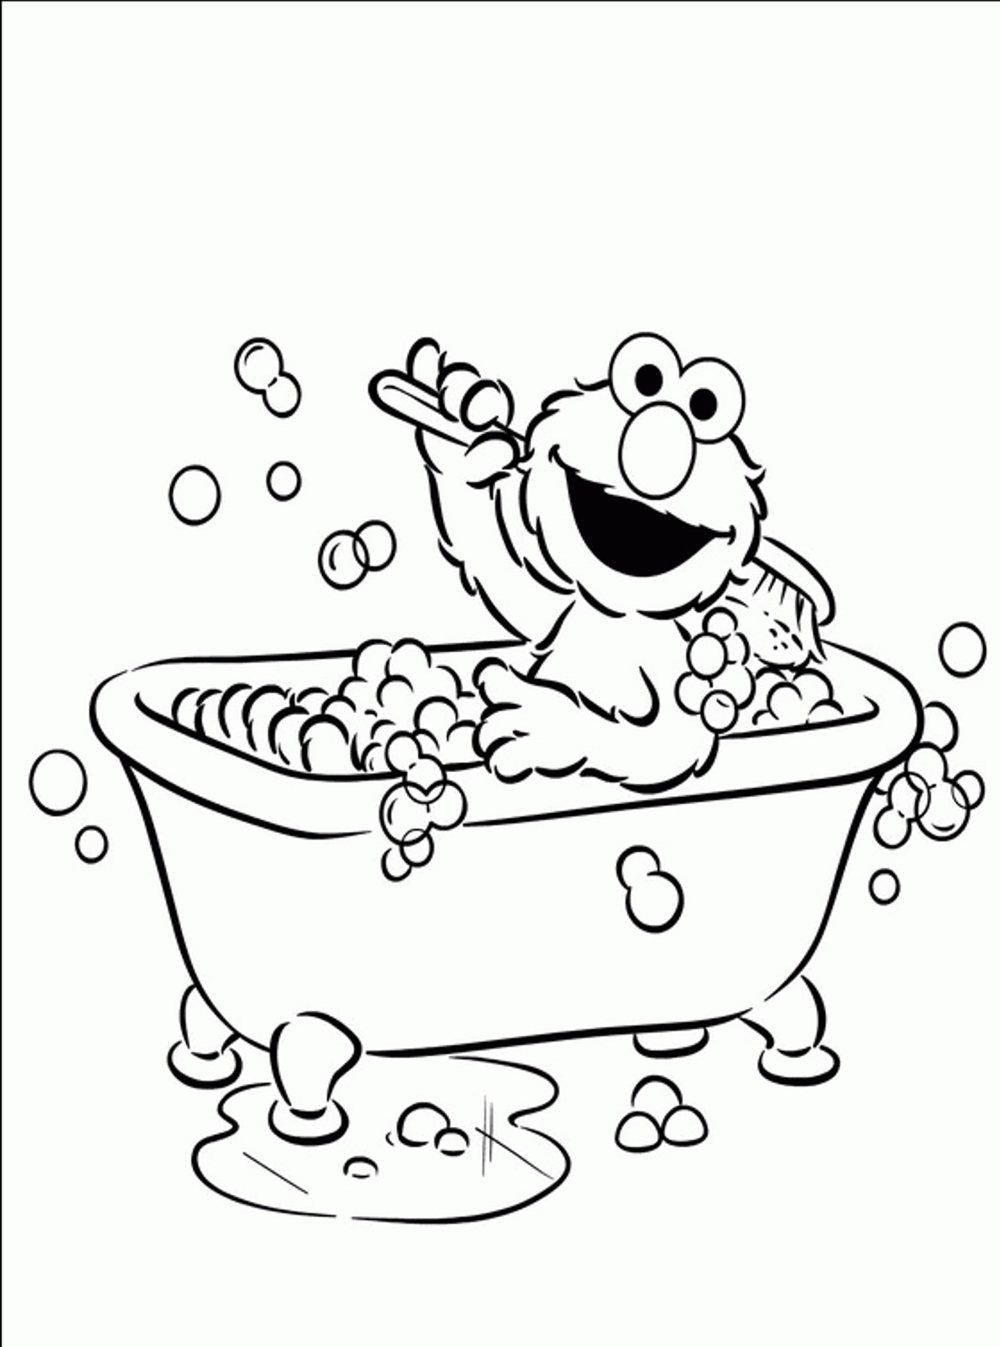 Elmo Coloring Pages To Print Printable Kids Colouring Pages Coloring Home